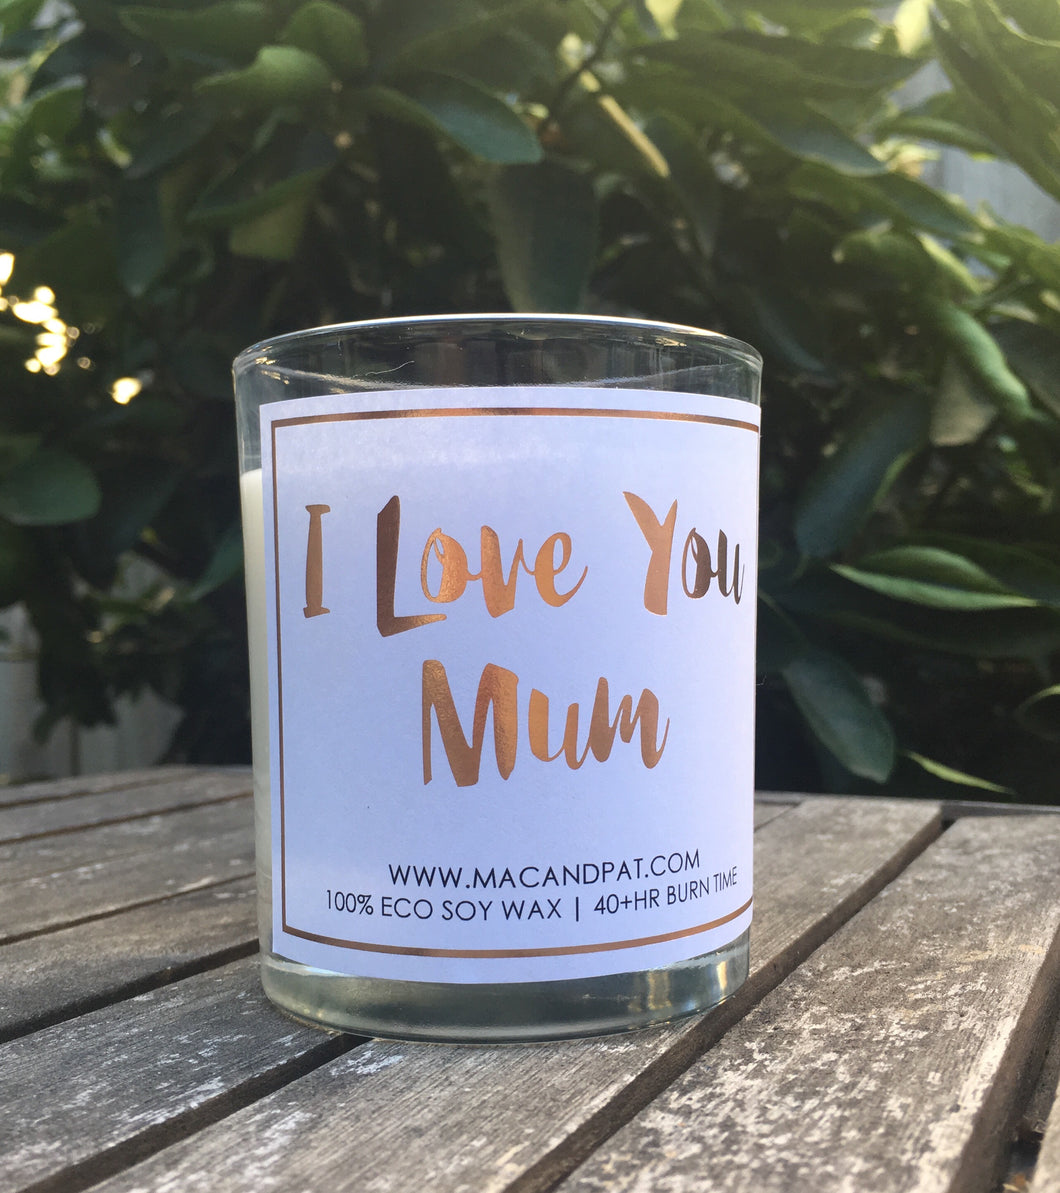 I Love You Mum Candle